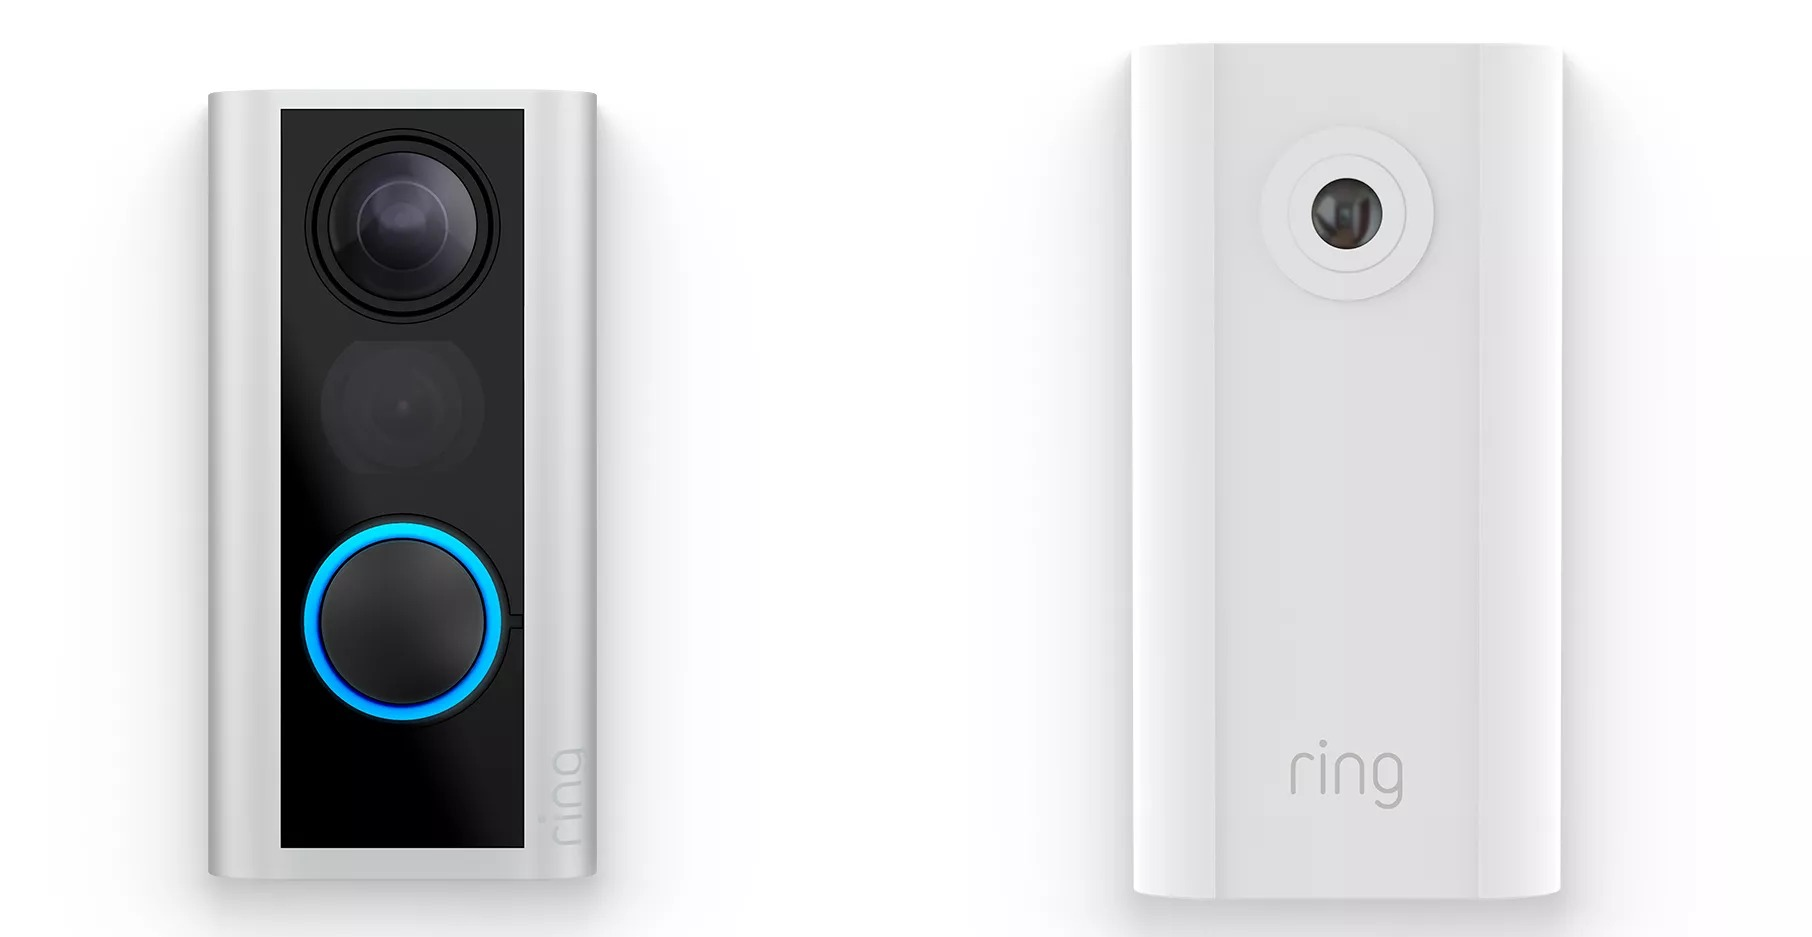 ring-is-making-a-peephole-camera